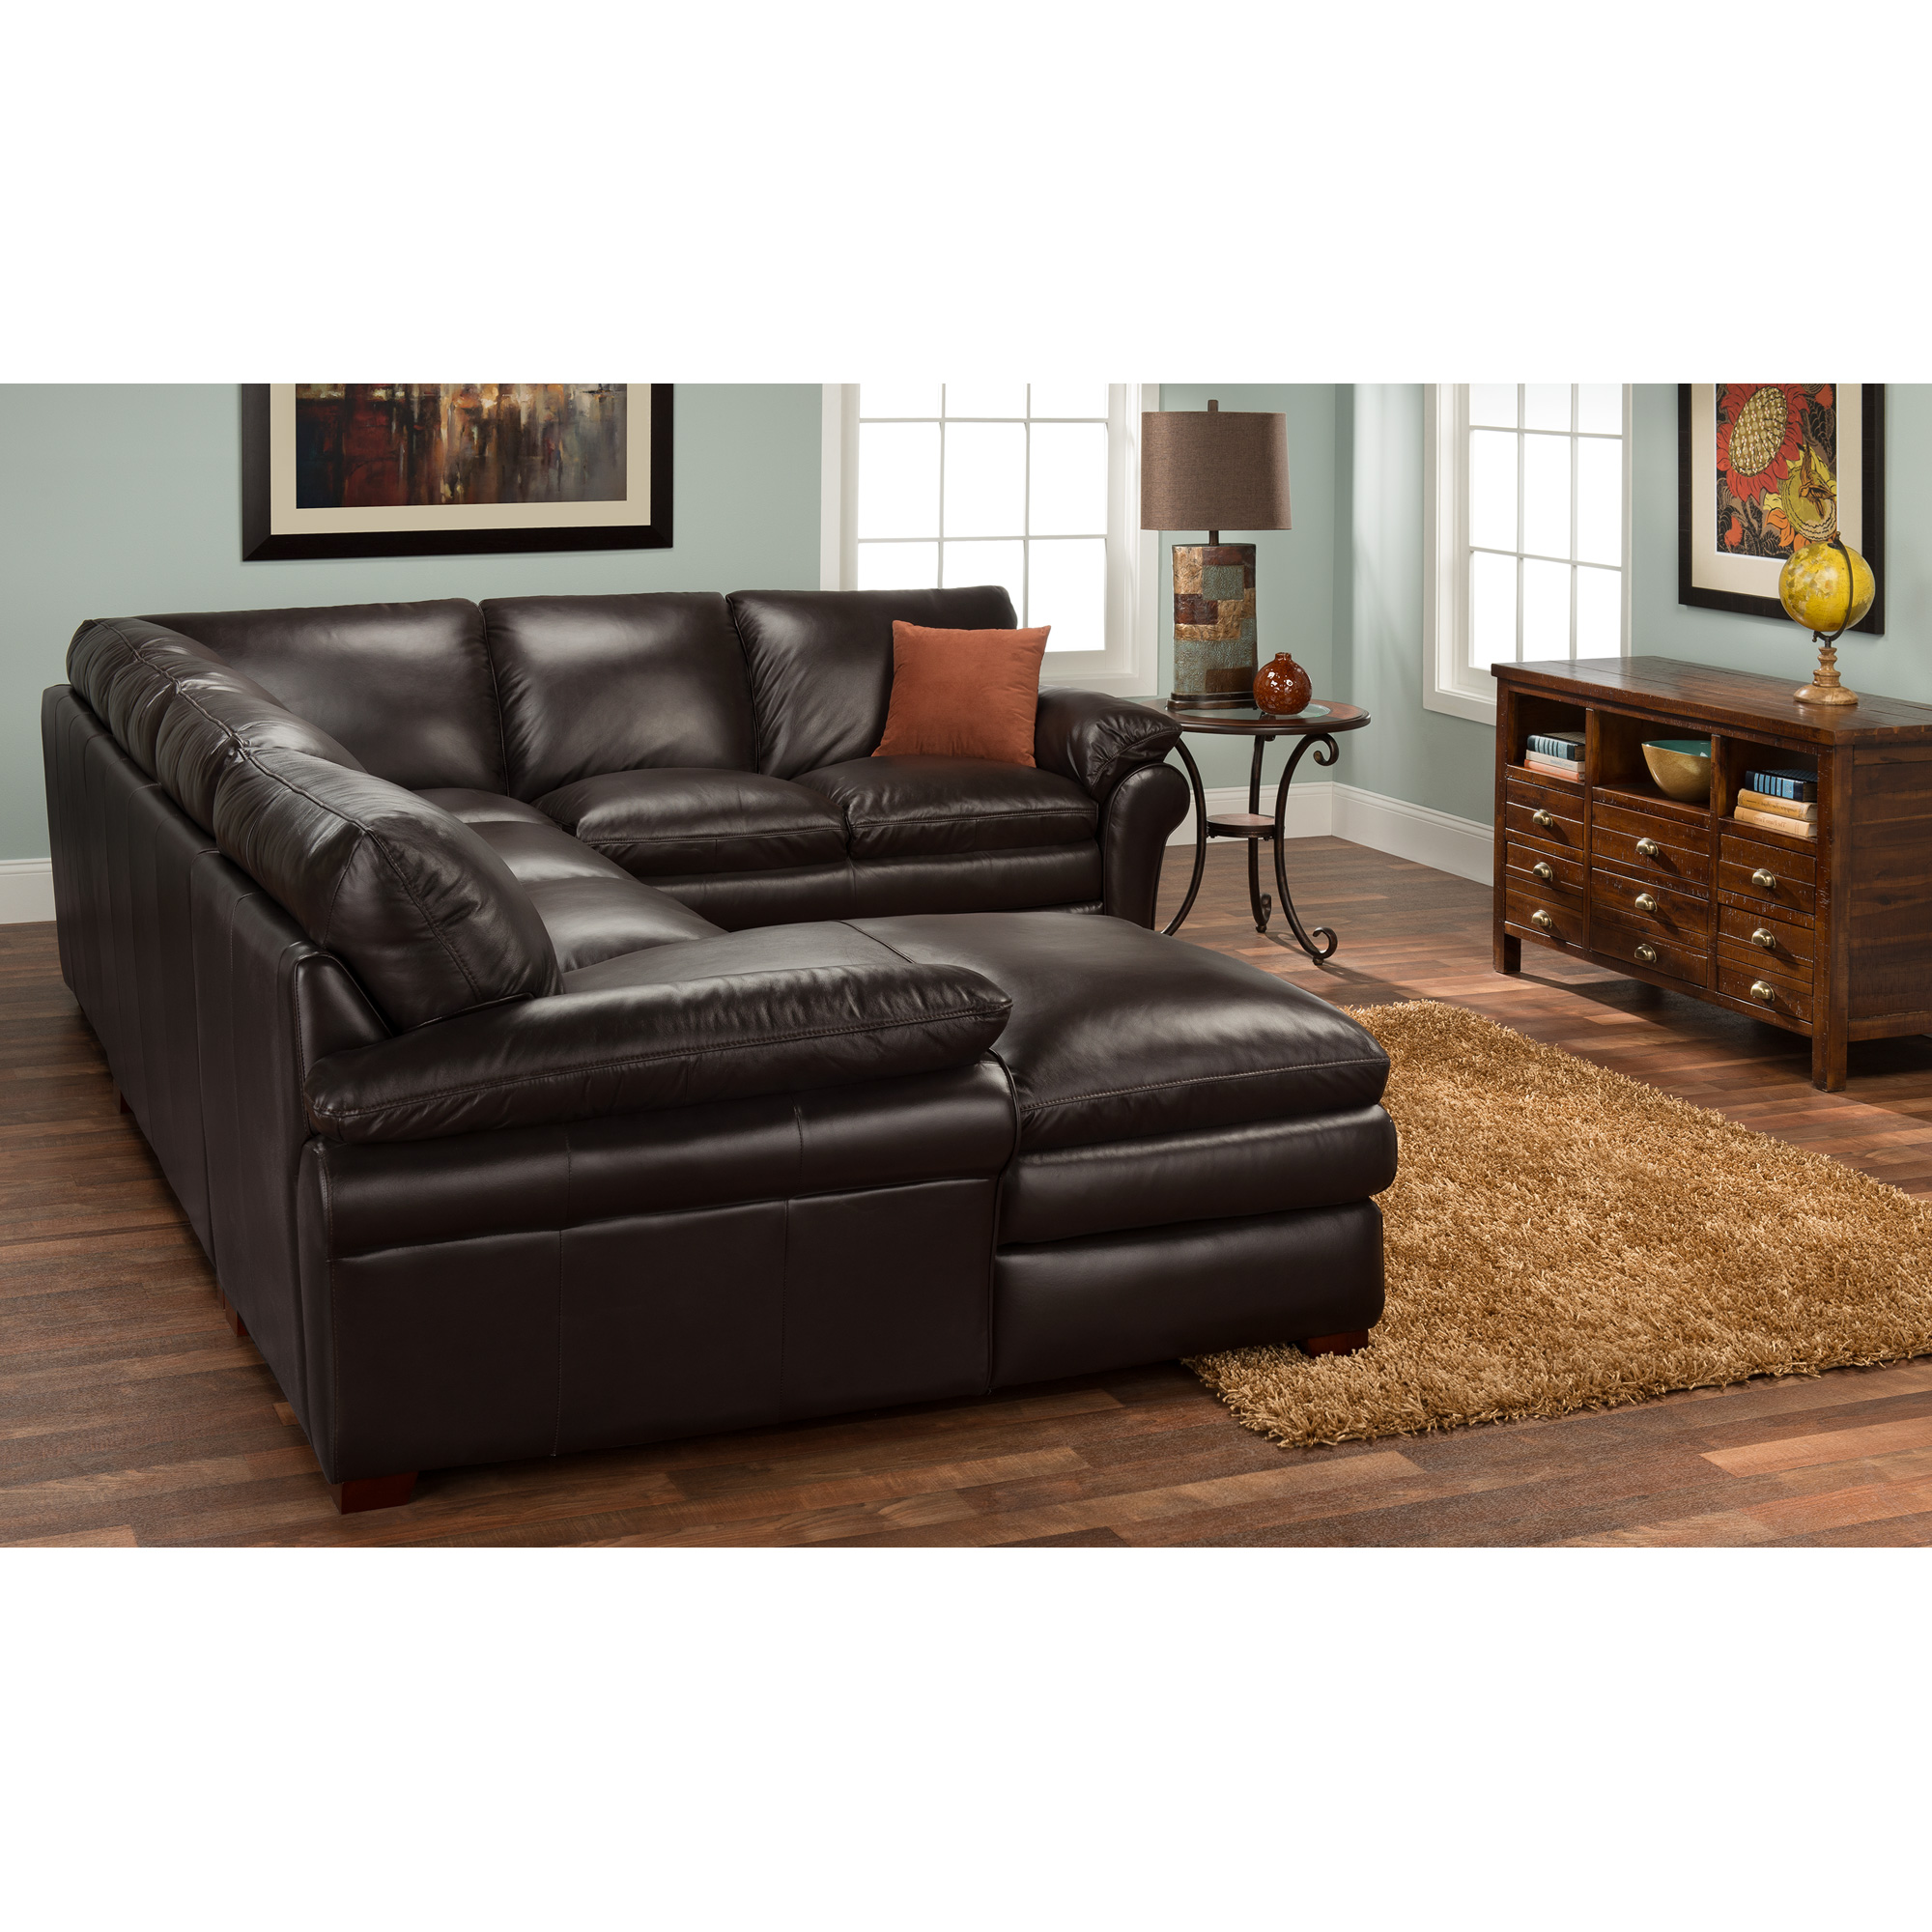 Futura Leather | Moldova Brown Left Arm Chaise Sectional Sofa